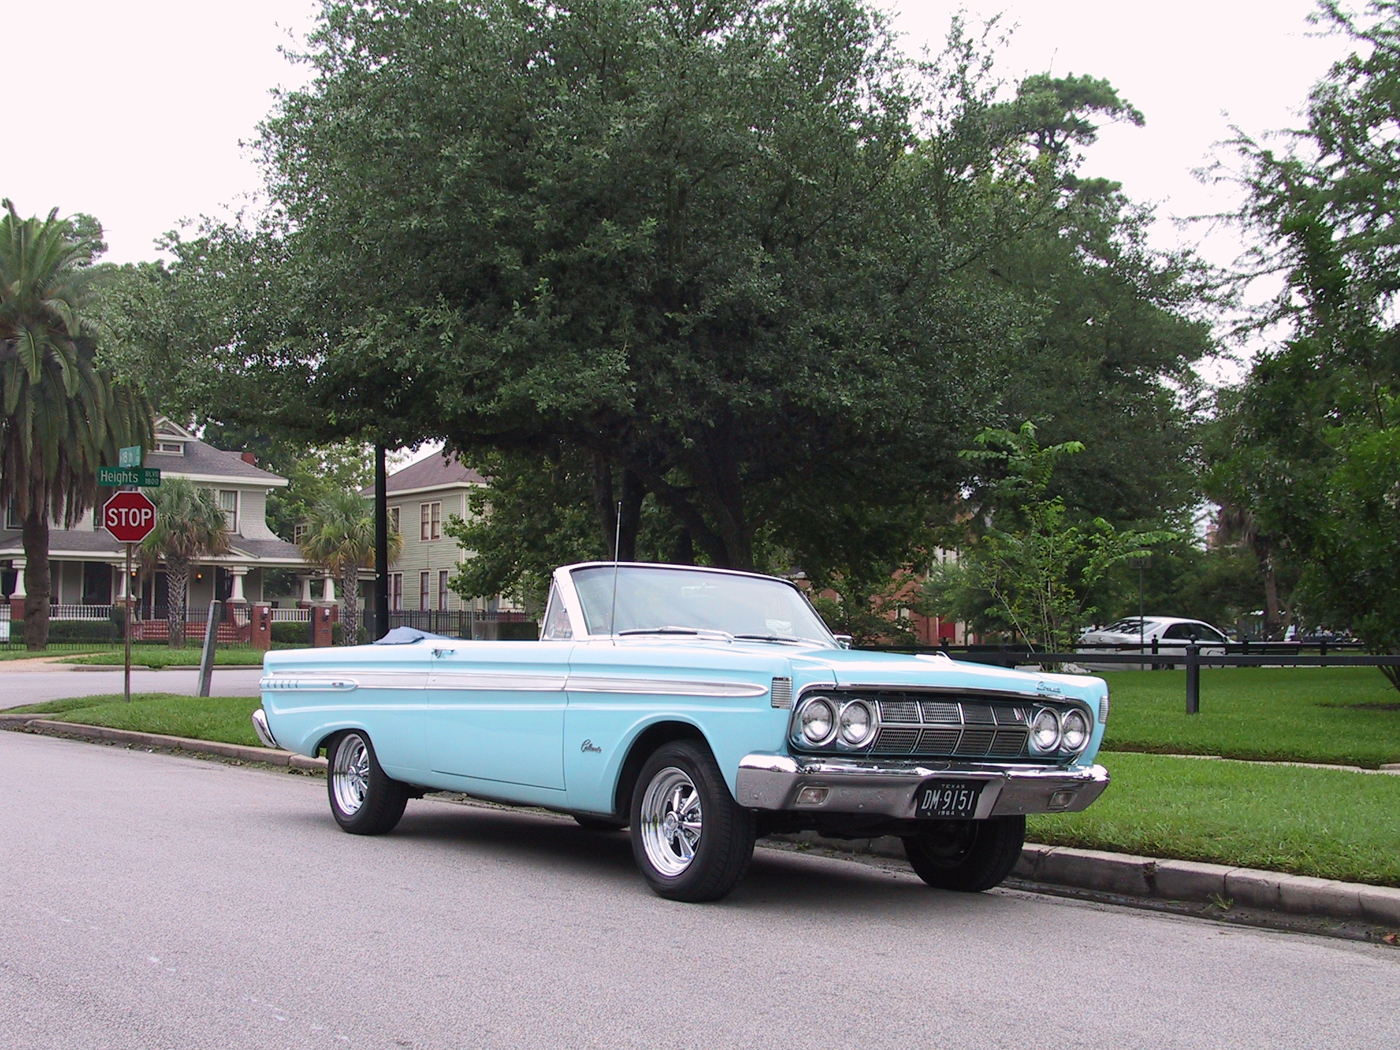 1964 Mercury Comet, Baby Blue, Bought For Mother, Son - Classic ...